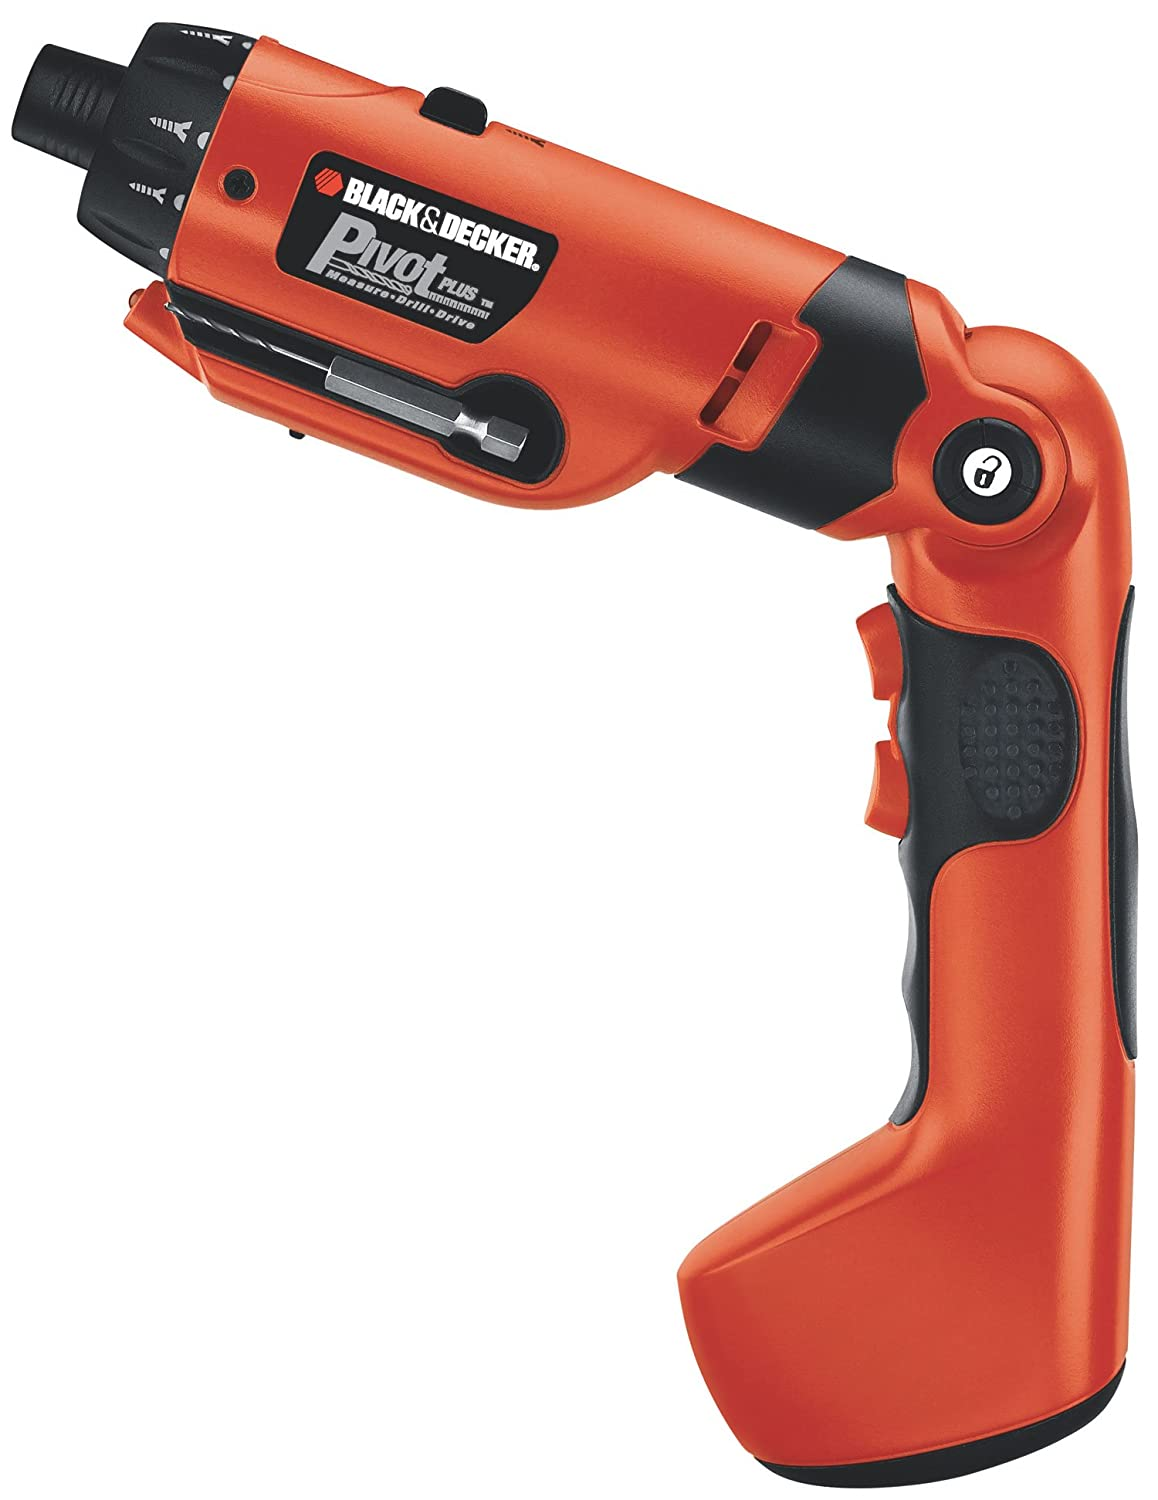 The Best Cordless Screwdriver 2